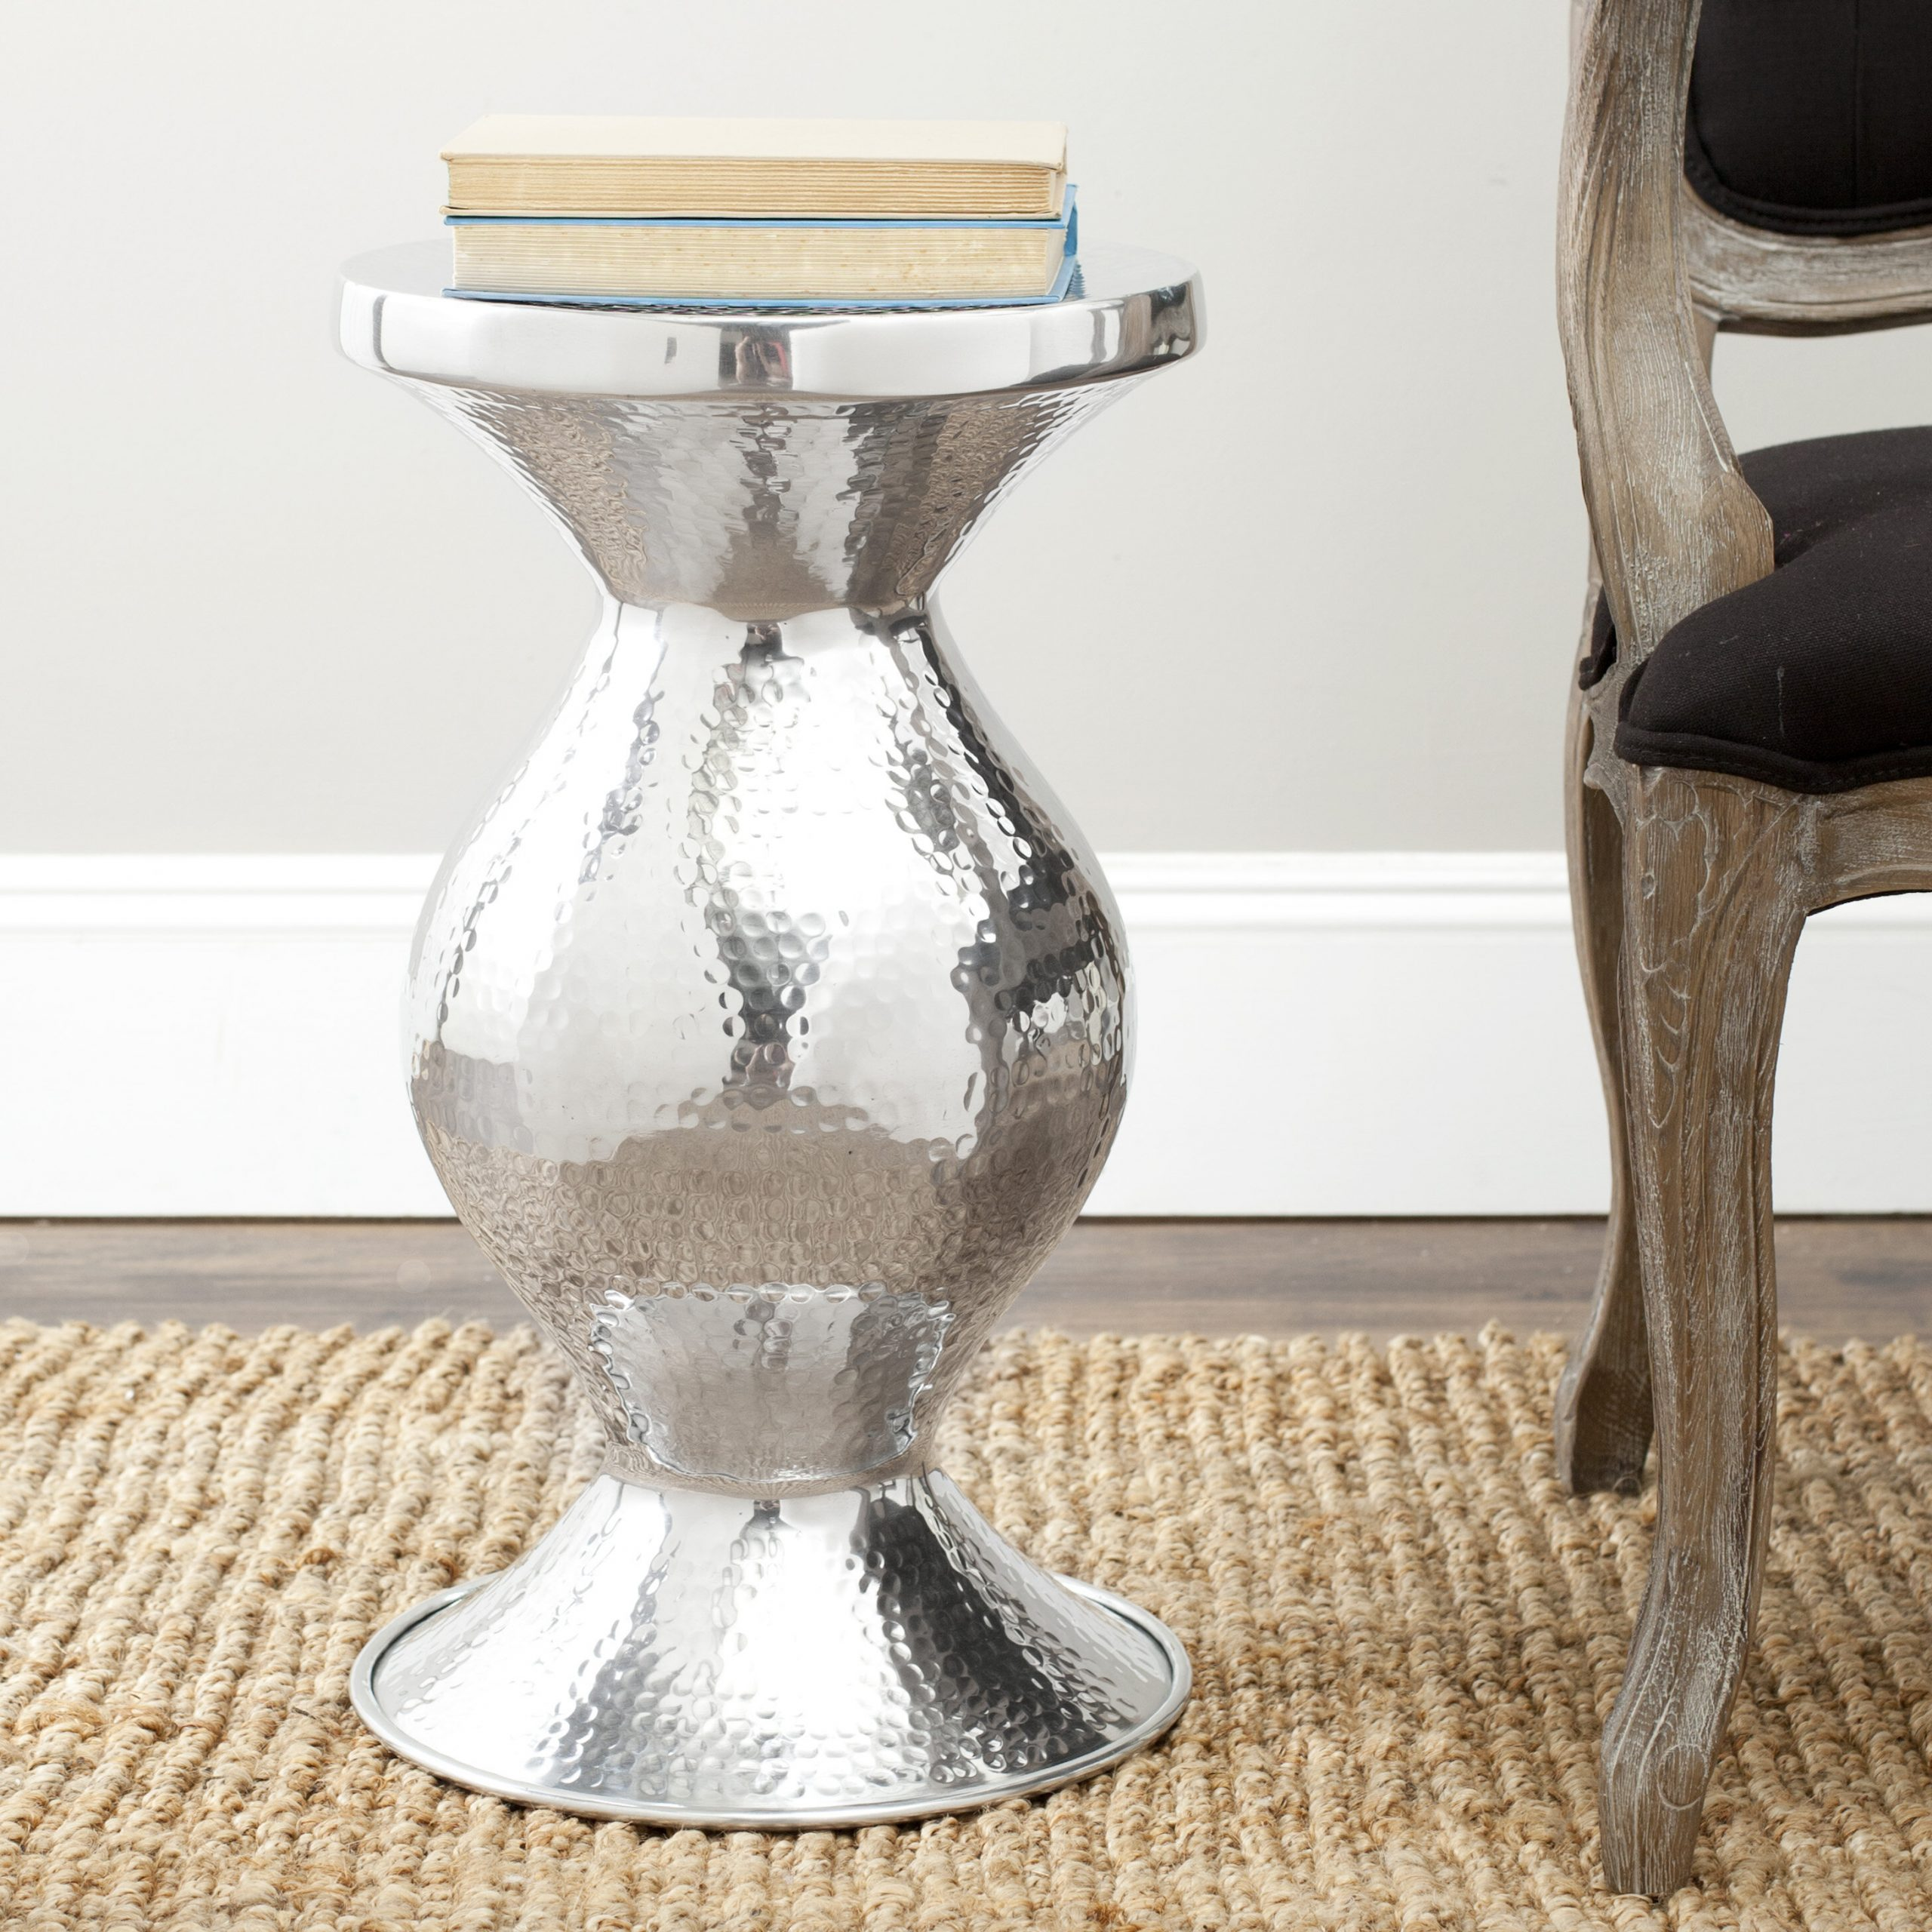 Silverd Metal Accent Stool For Carmon Ceramic Garden Tool (View 21 of 25)